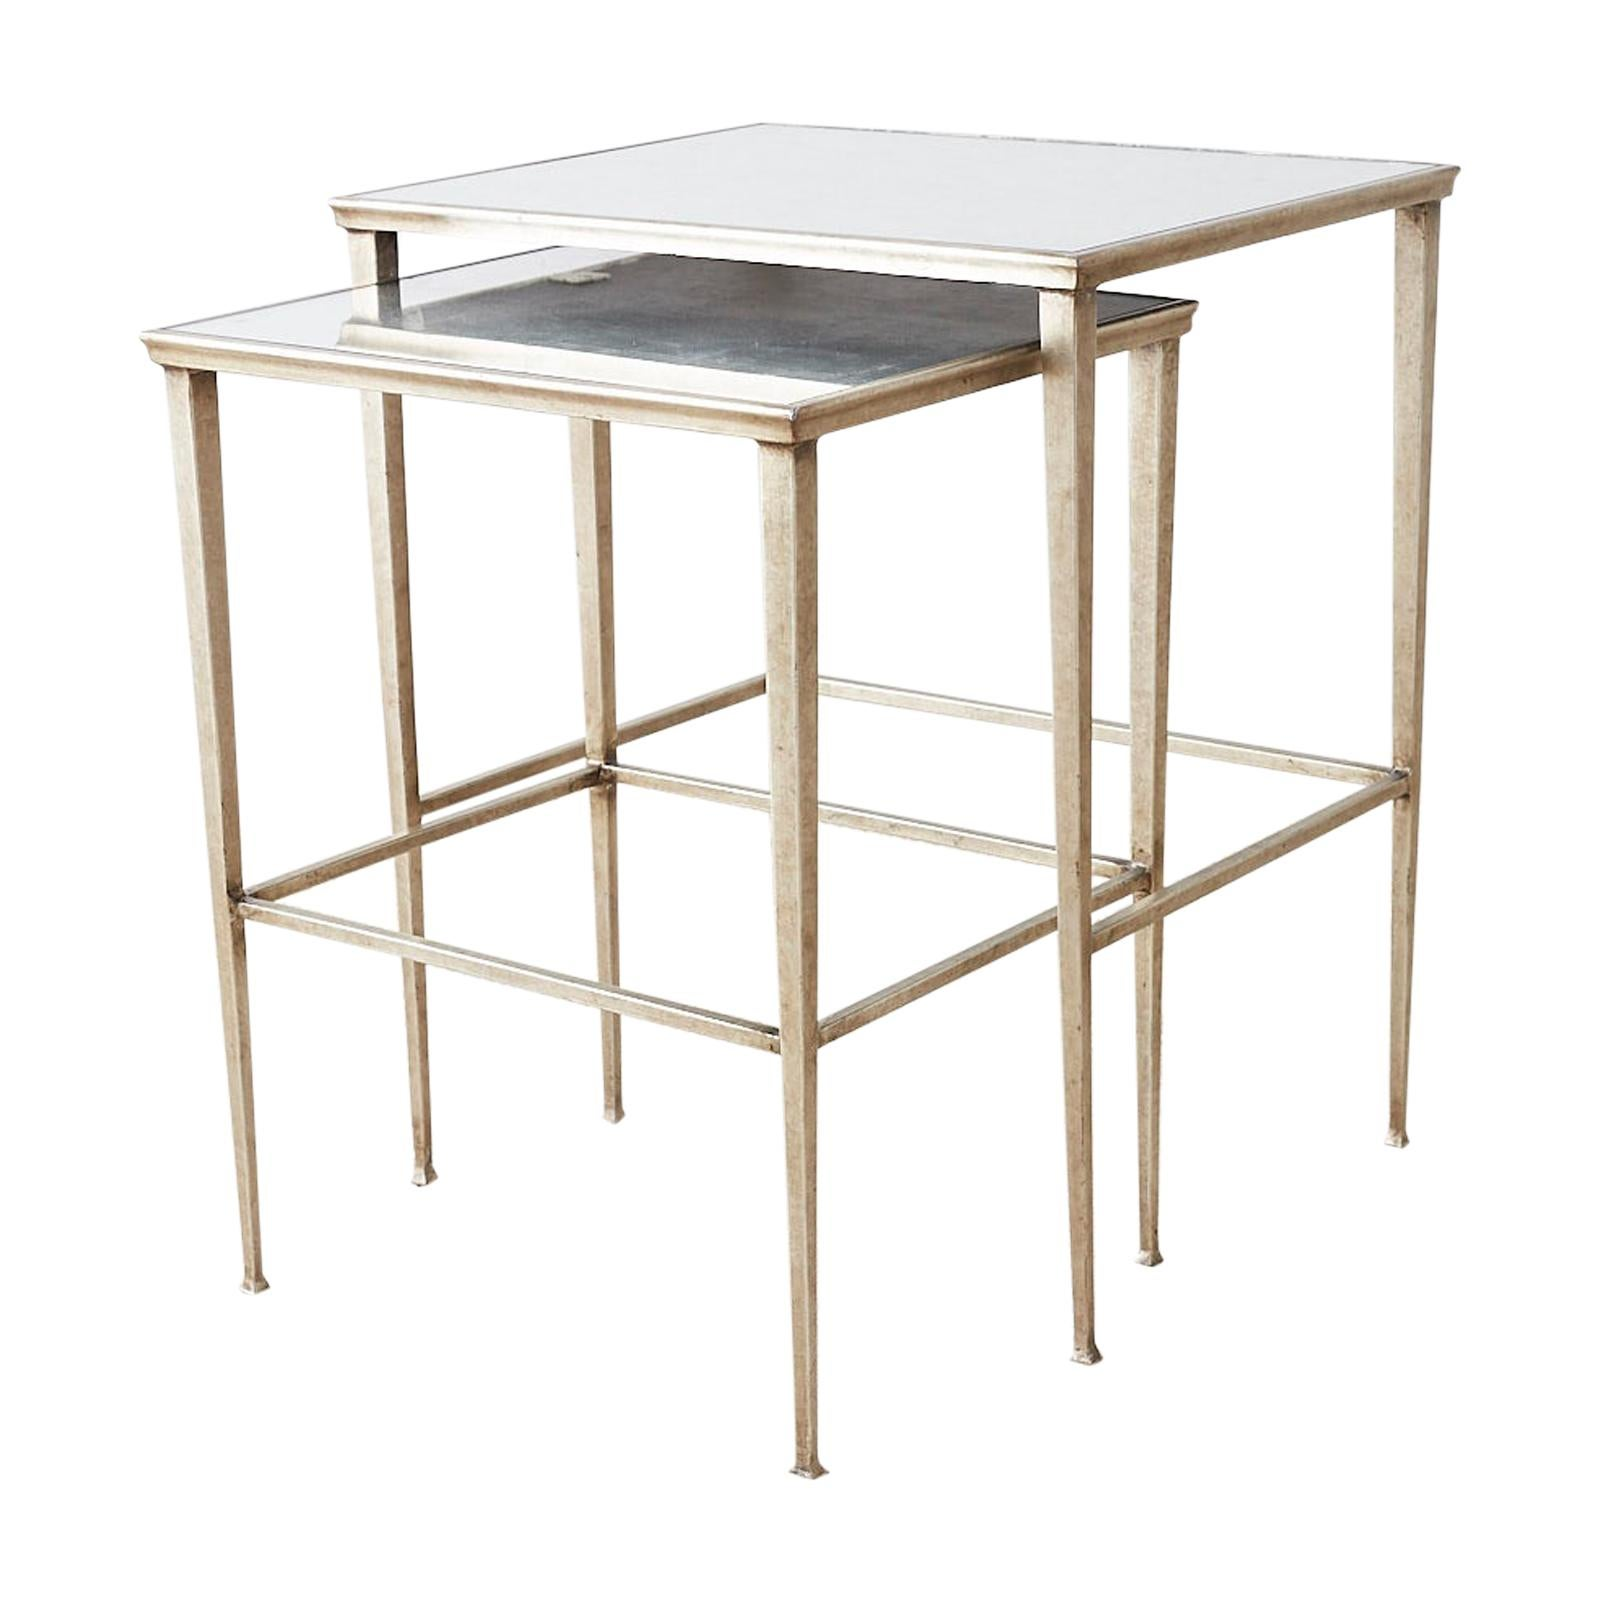 Pair of Silvered Iron Nesting Tables with Mirrored Tops